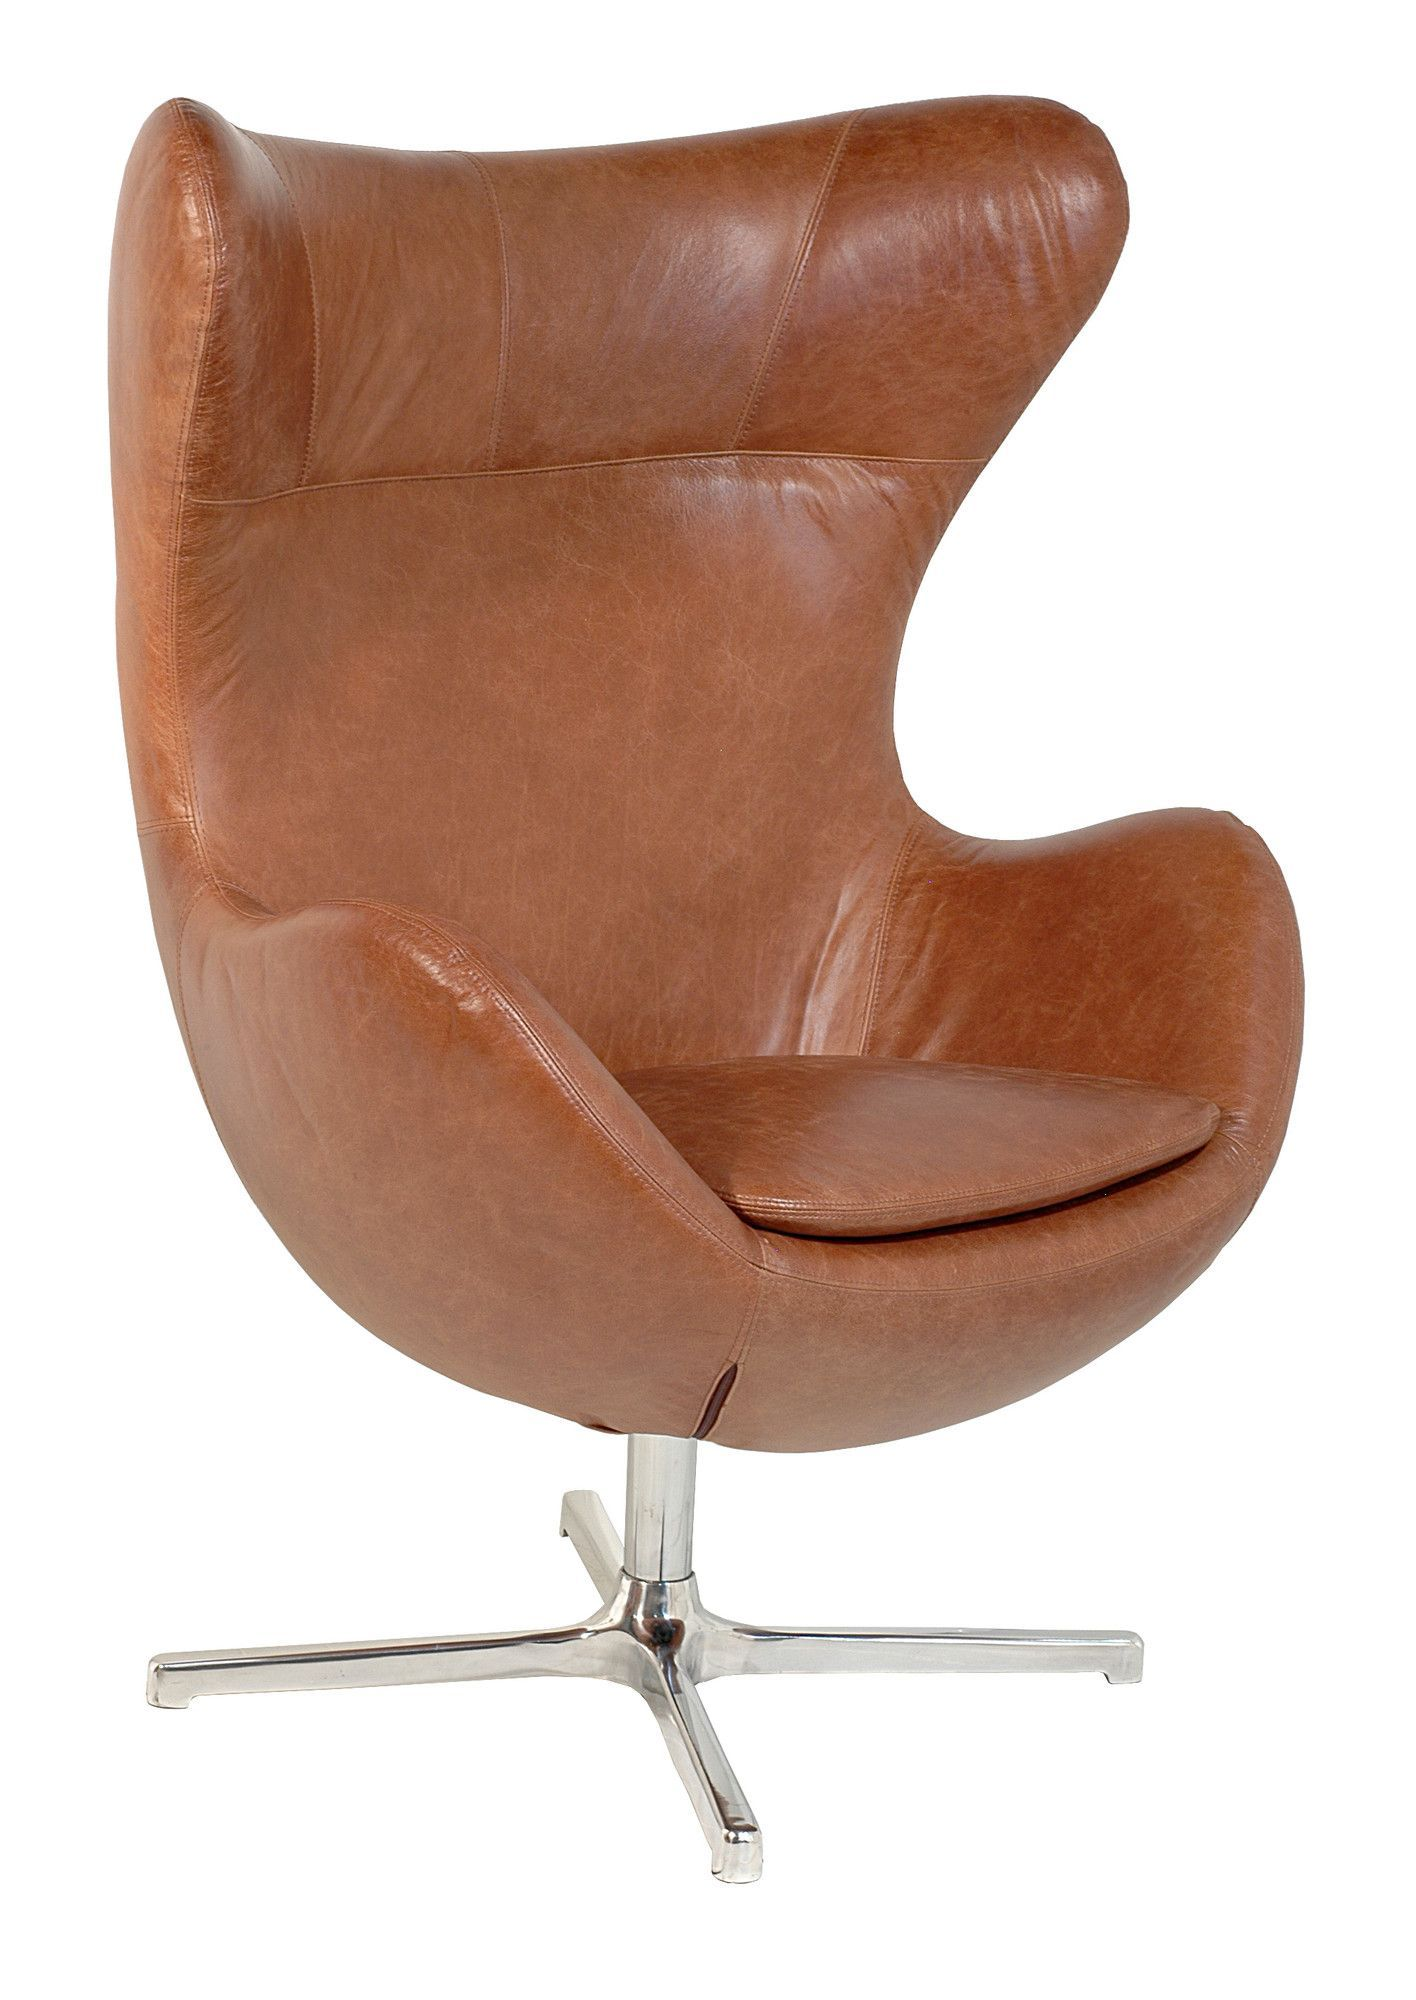 muna egg shape arm chair products pinterest arms